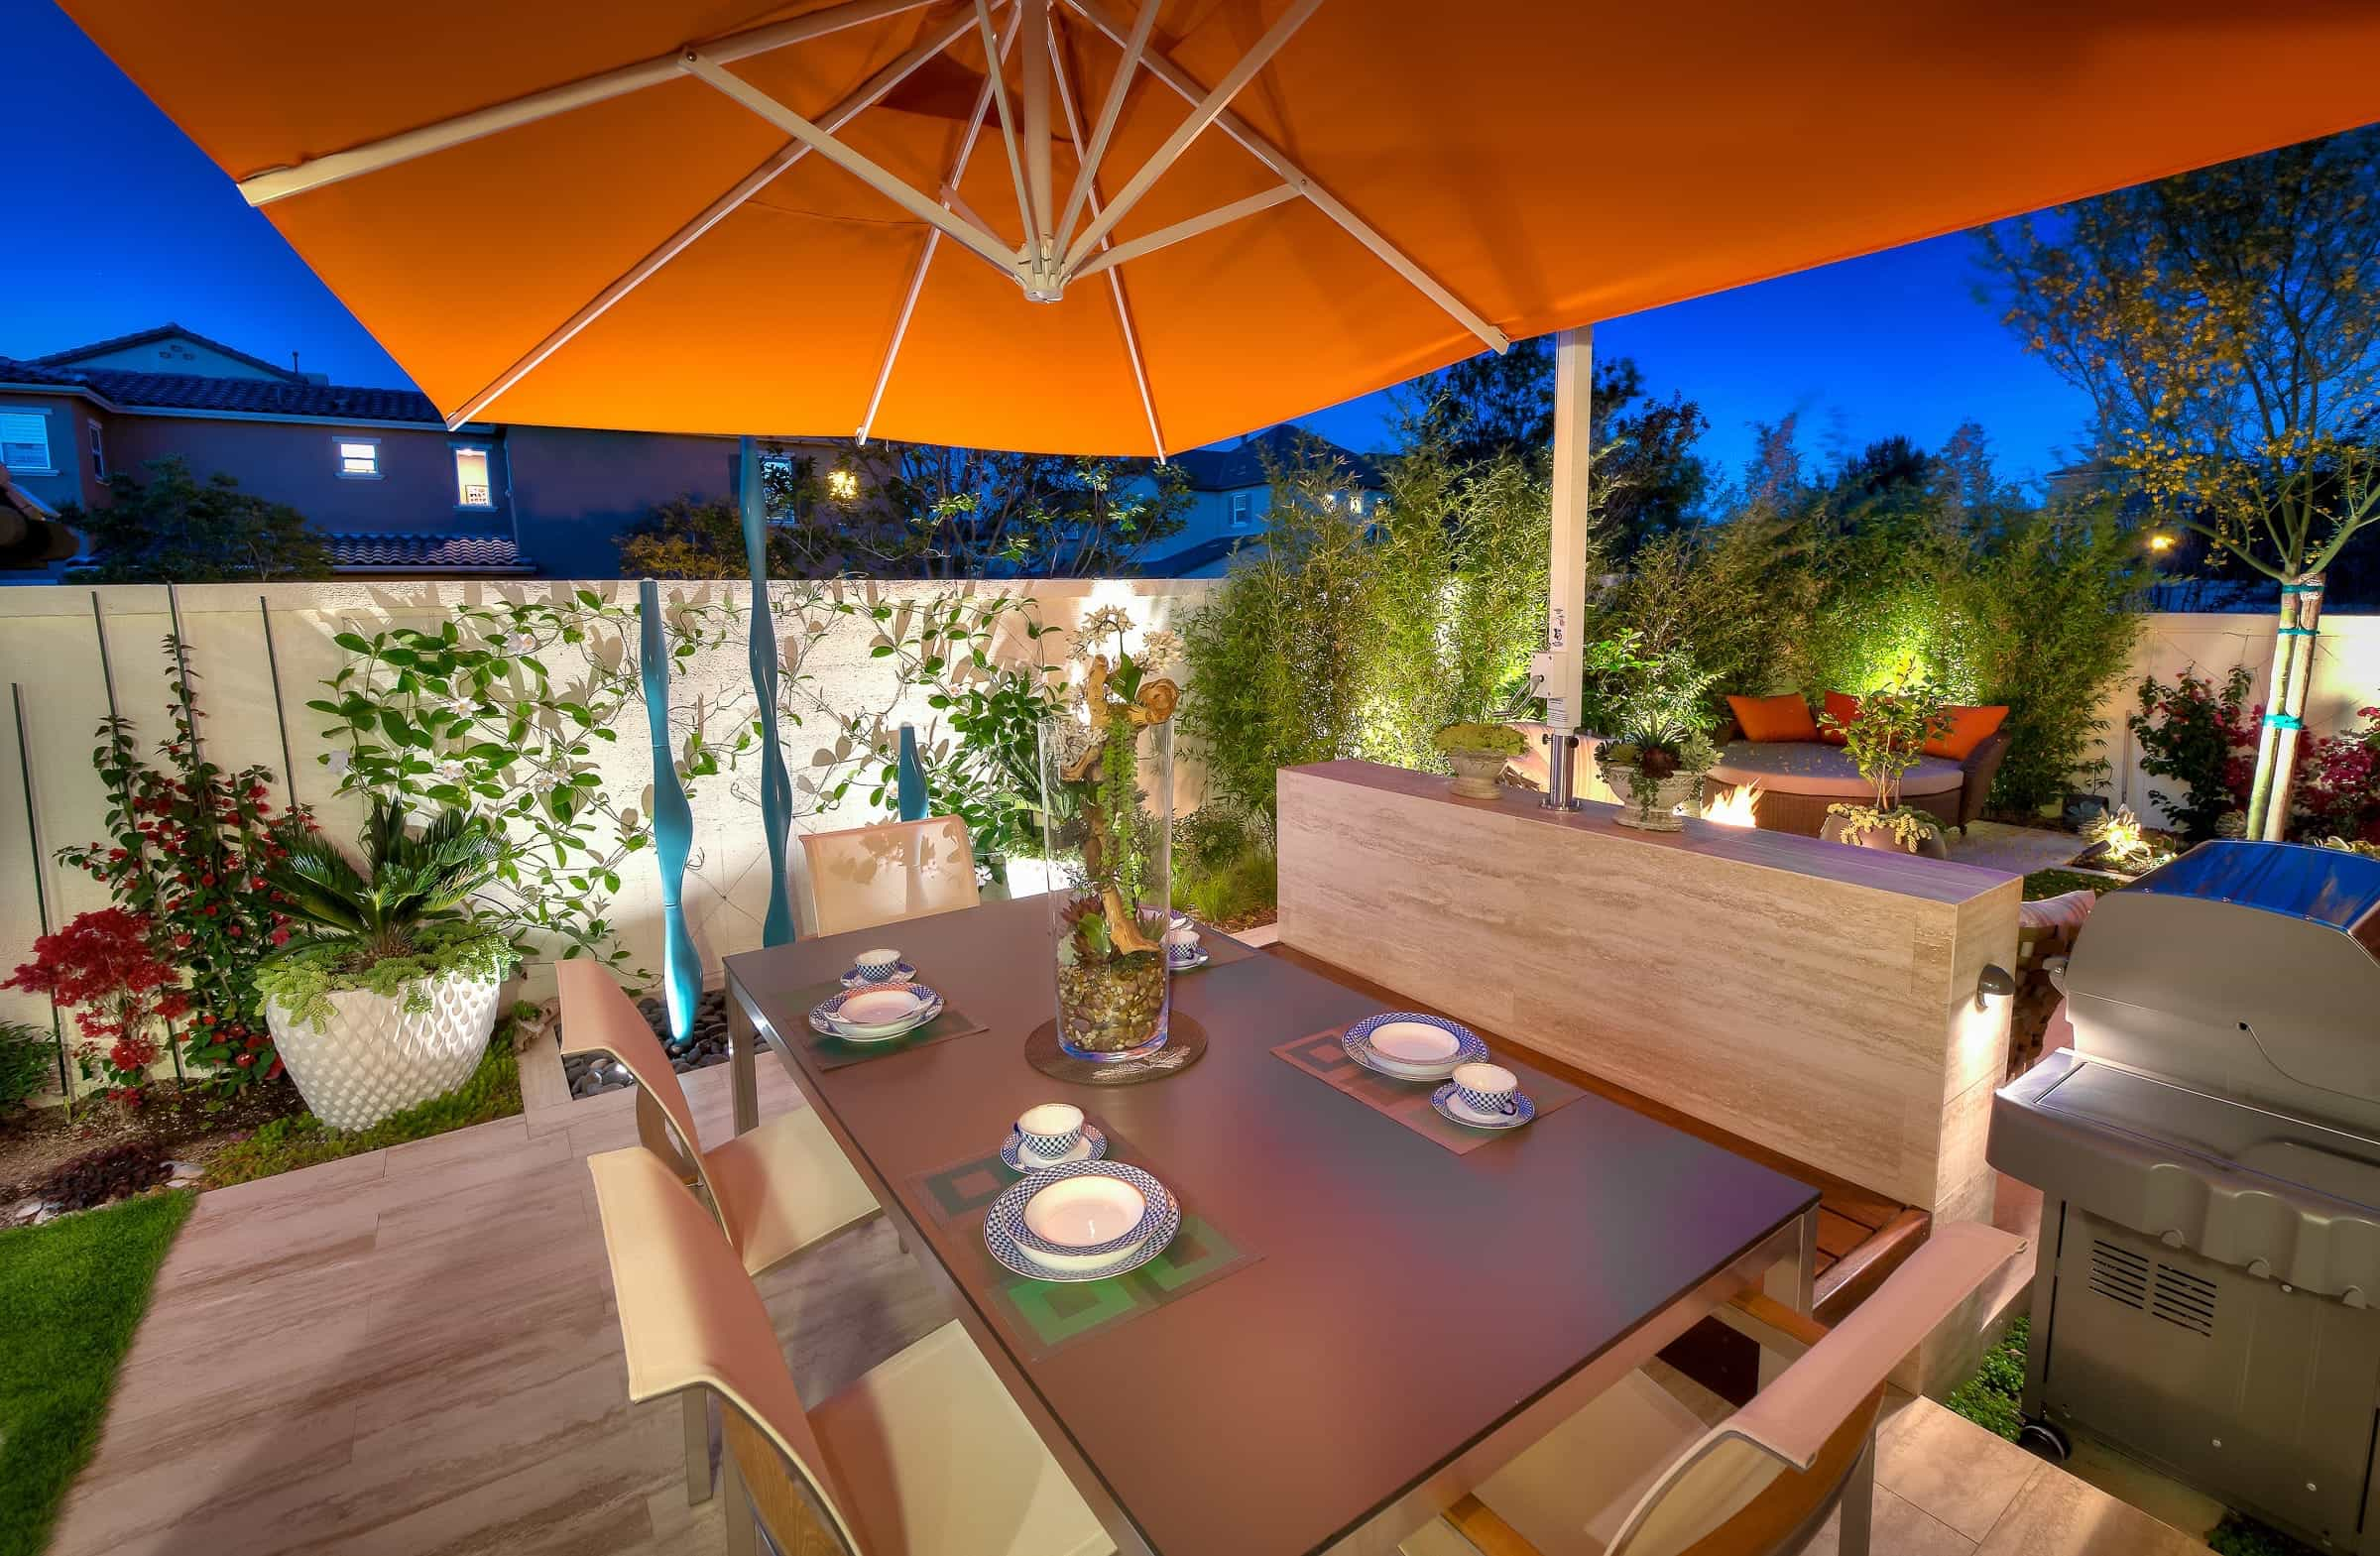 Modern Giant Umbrella Recover For Romantic Backyard Dinner (Image 4 of 8)